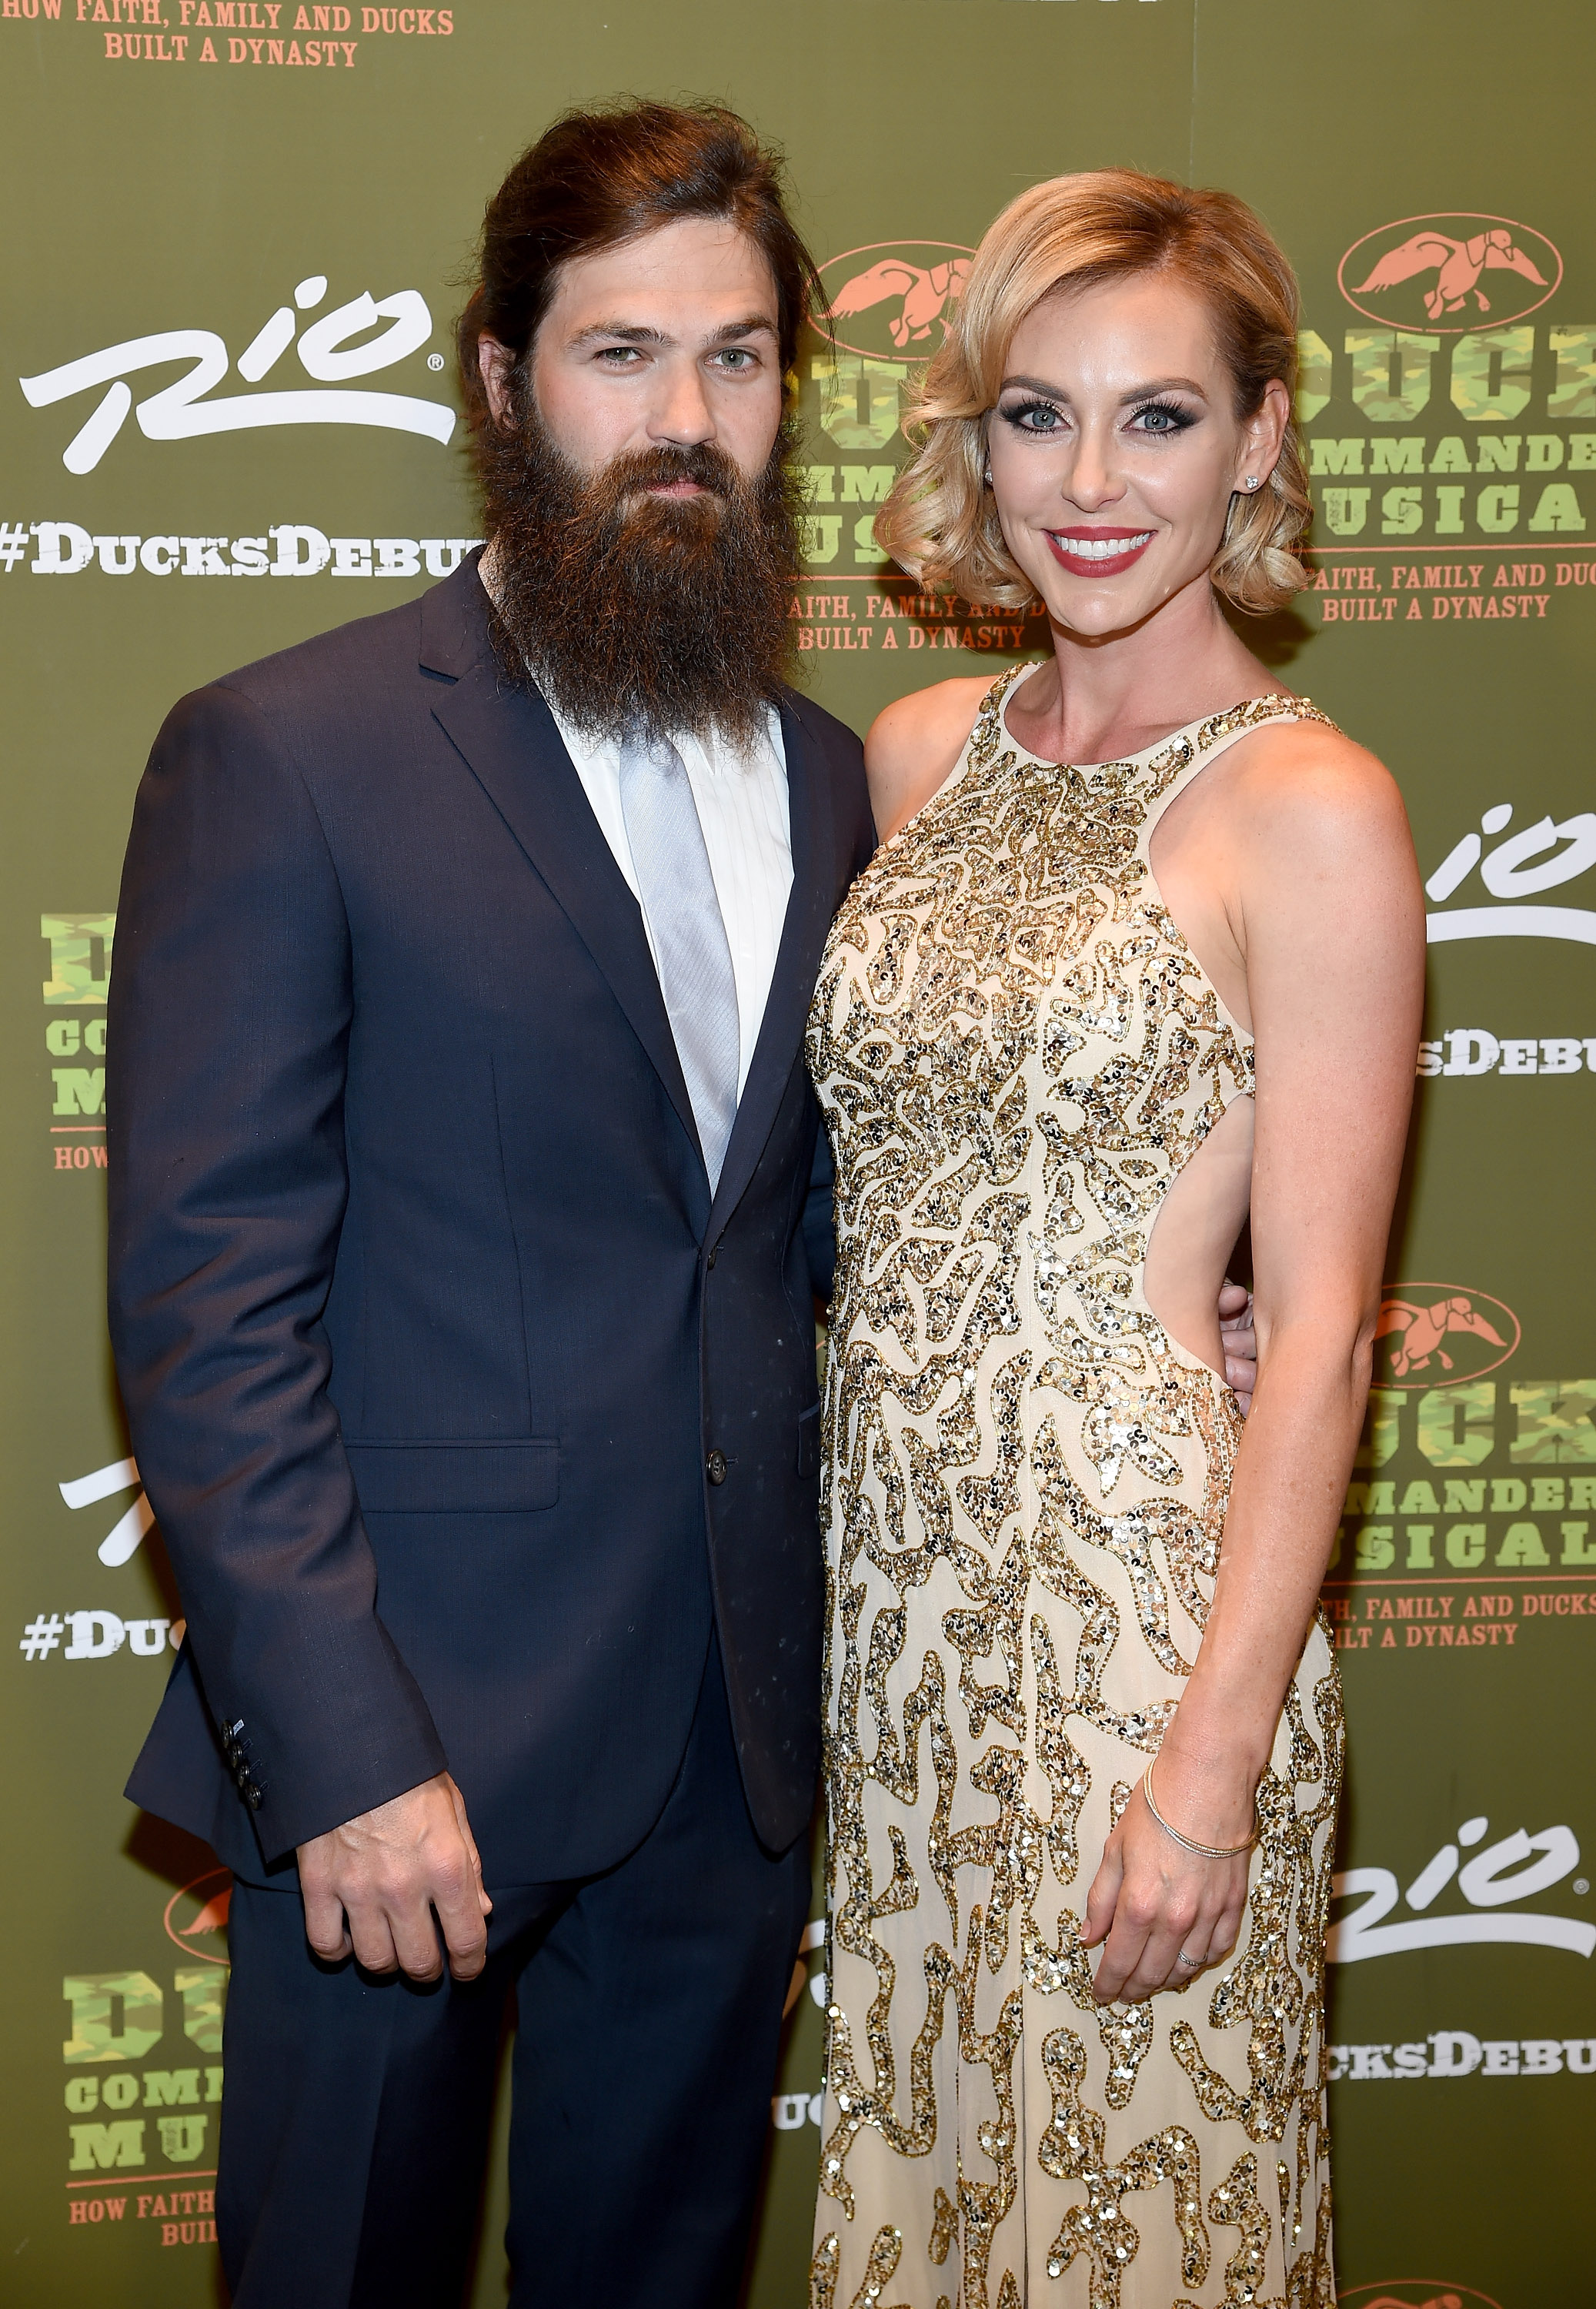 Duck Dynasty Stars Jep And Jessica Robertson Adopt A Baby Boy